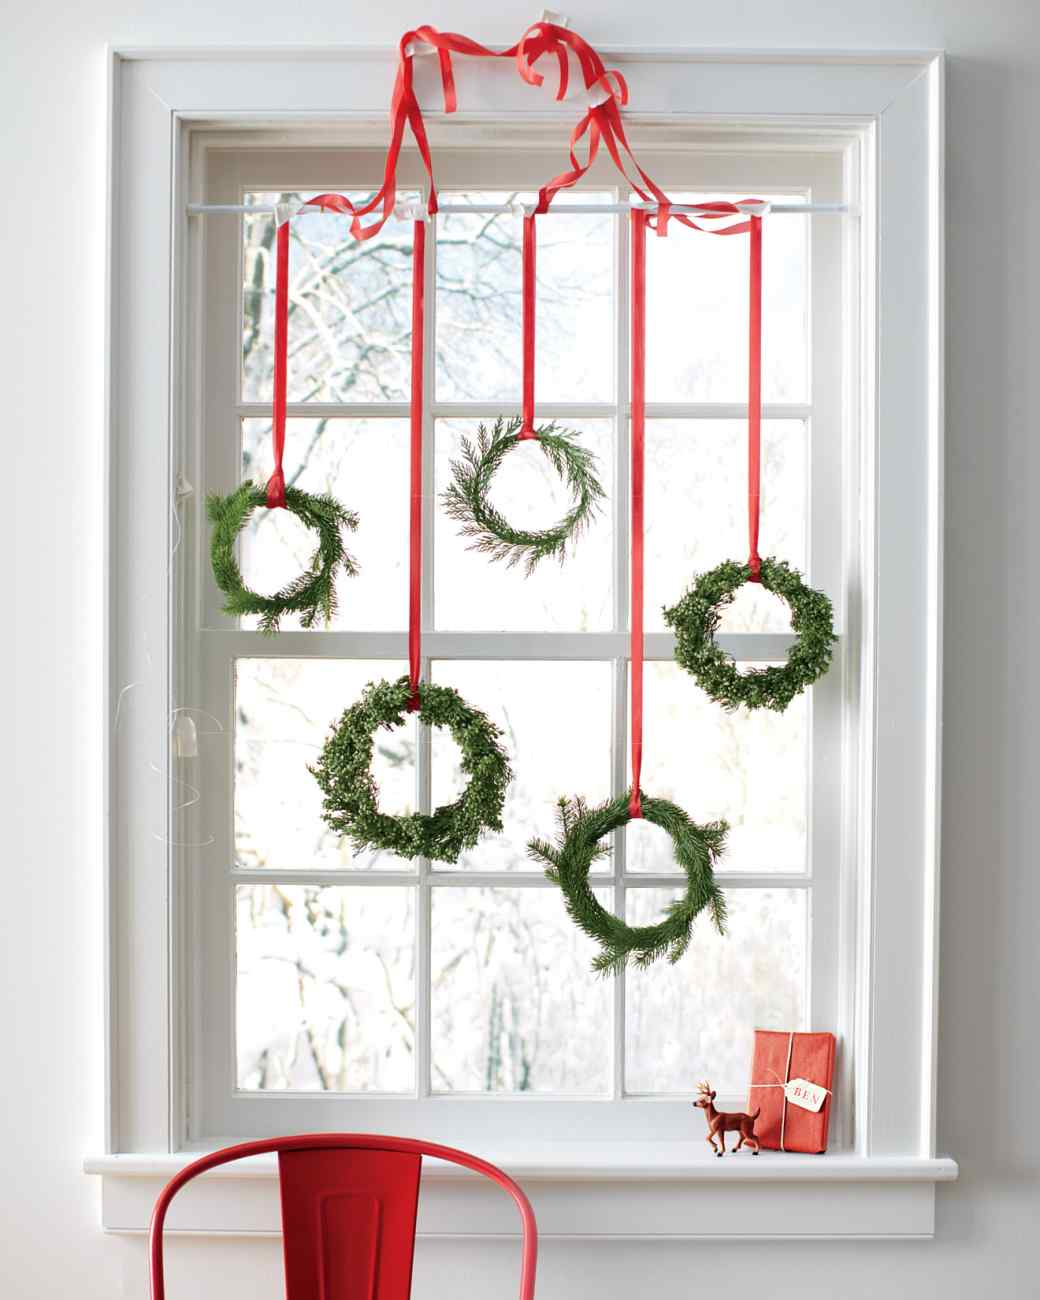 4-christmas-window-decorations-wreaths